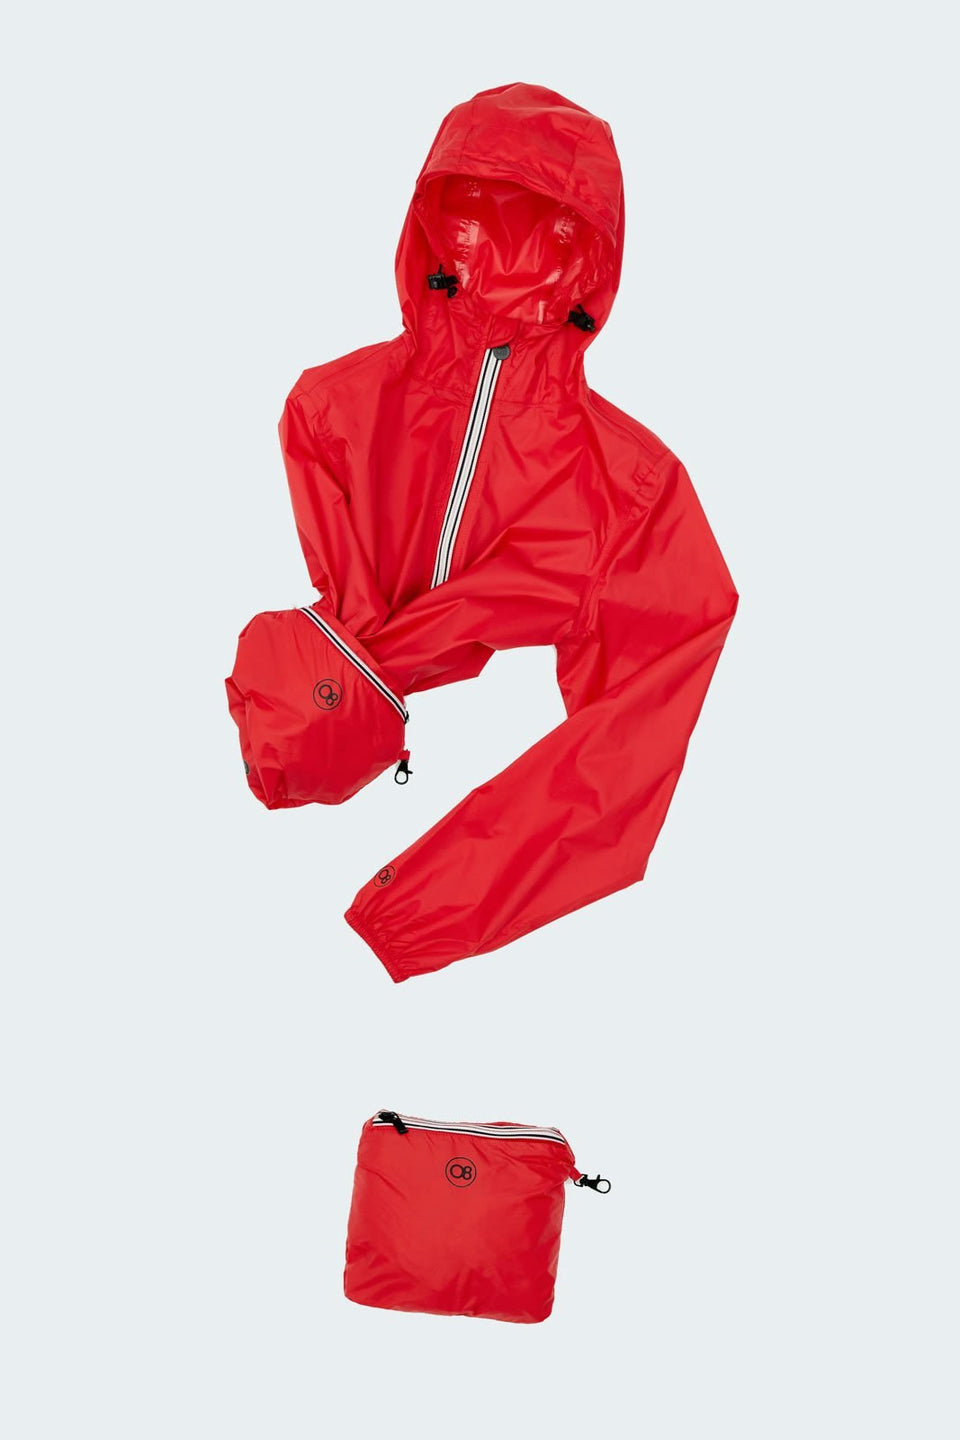 Red Full Zip Packable Rain Jacket - Woman rain jacket -  O8lifestyle